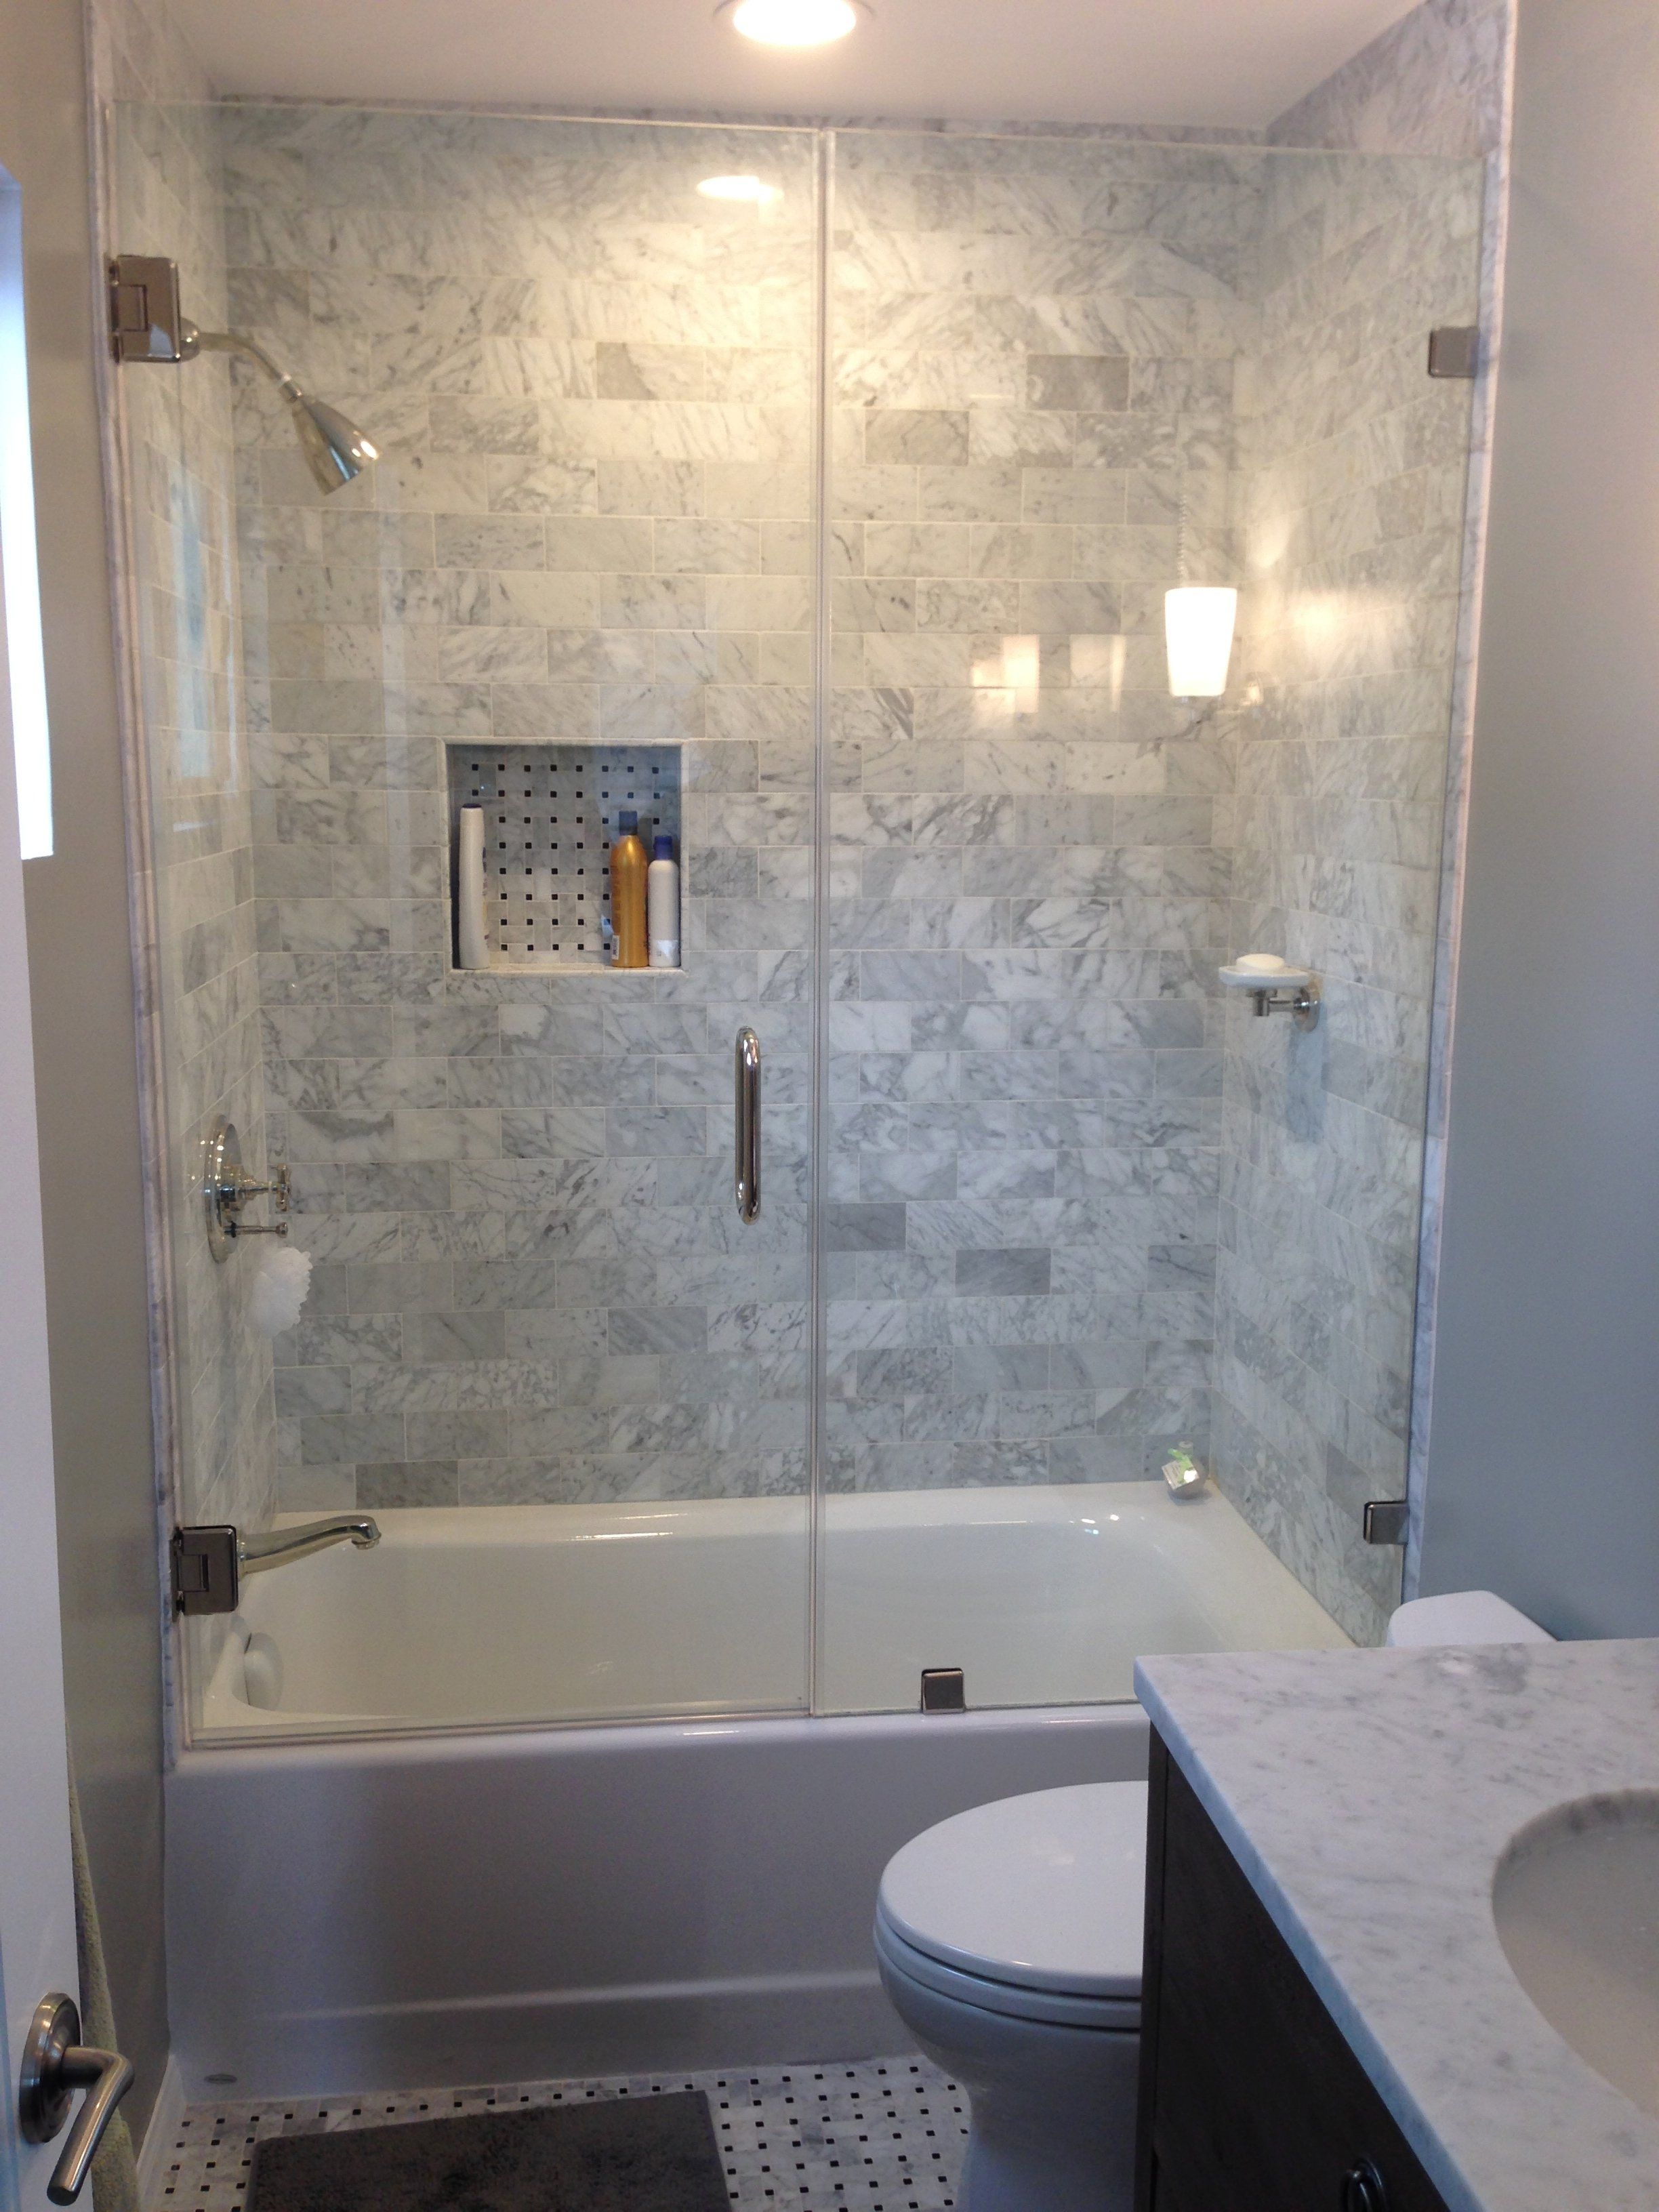 Bathroom Rectangle White Bathtub In Glass Shower Stalls With